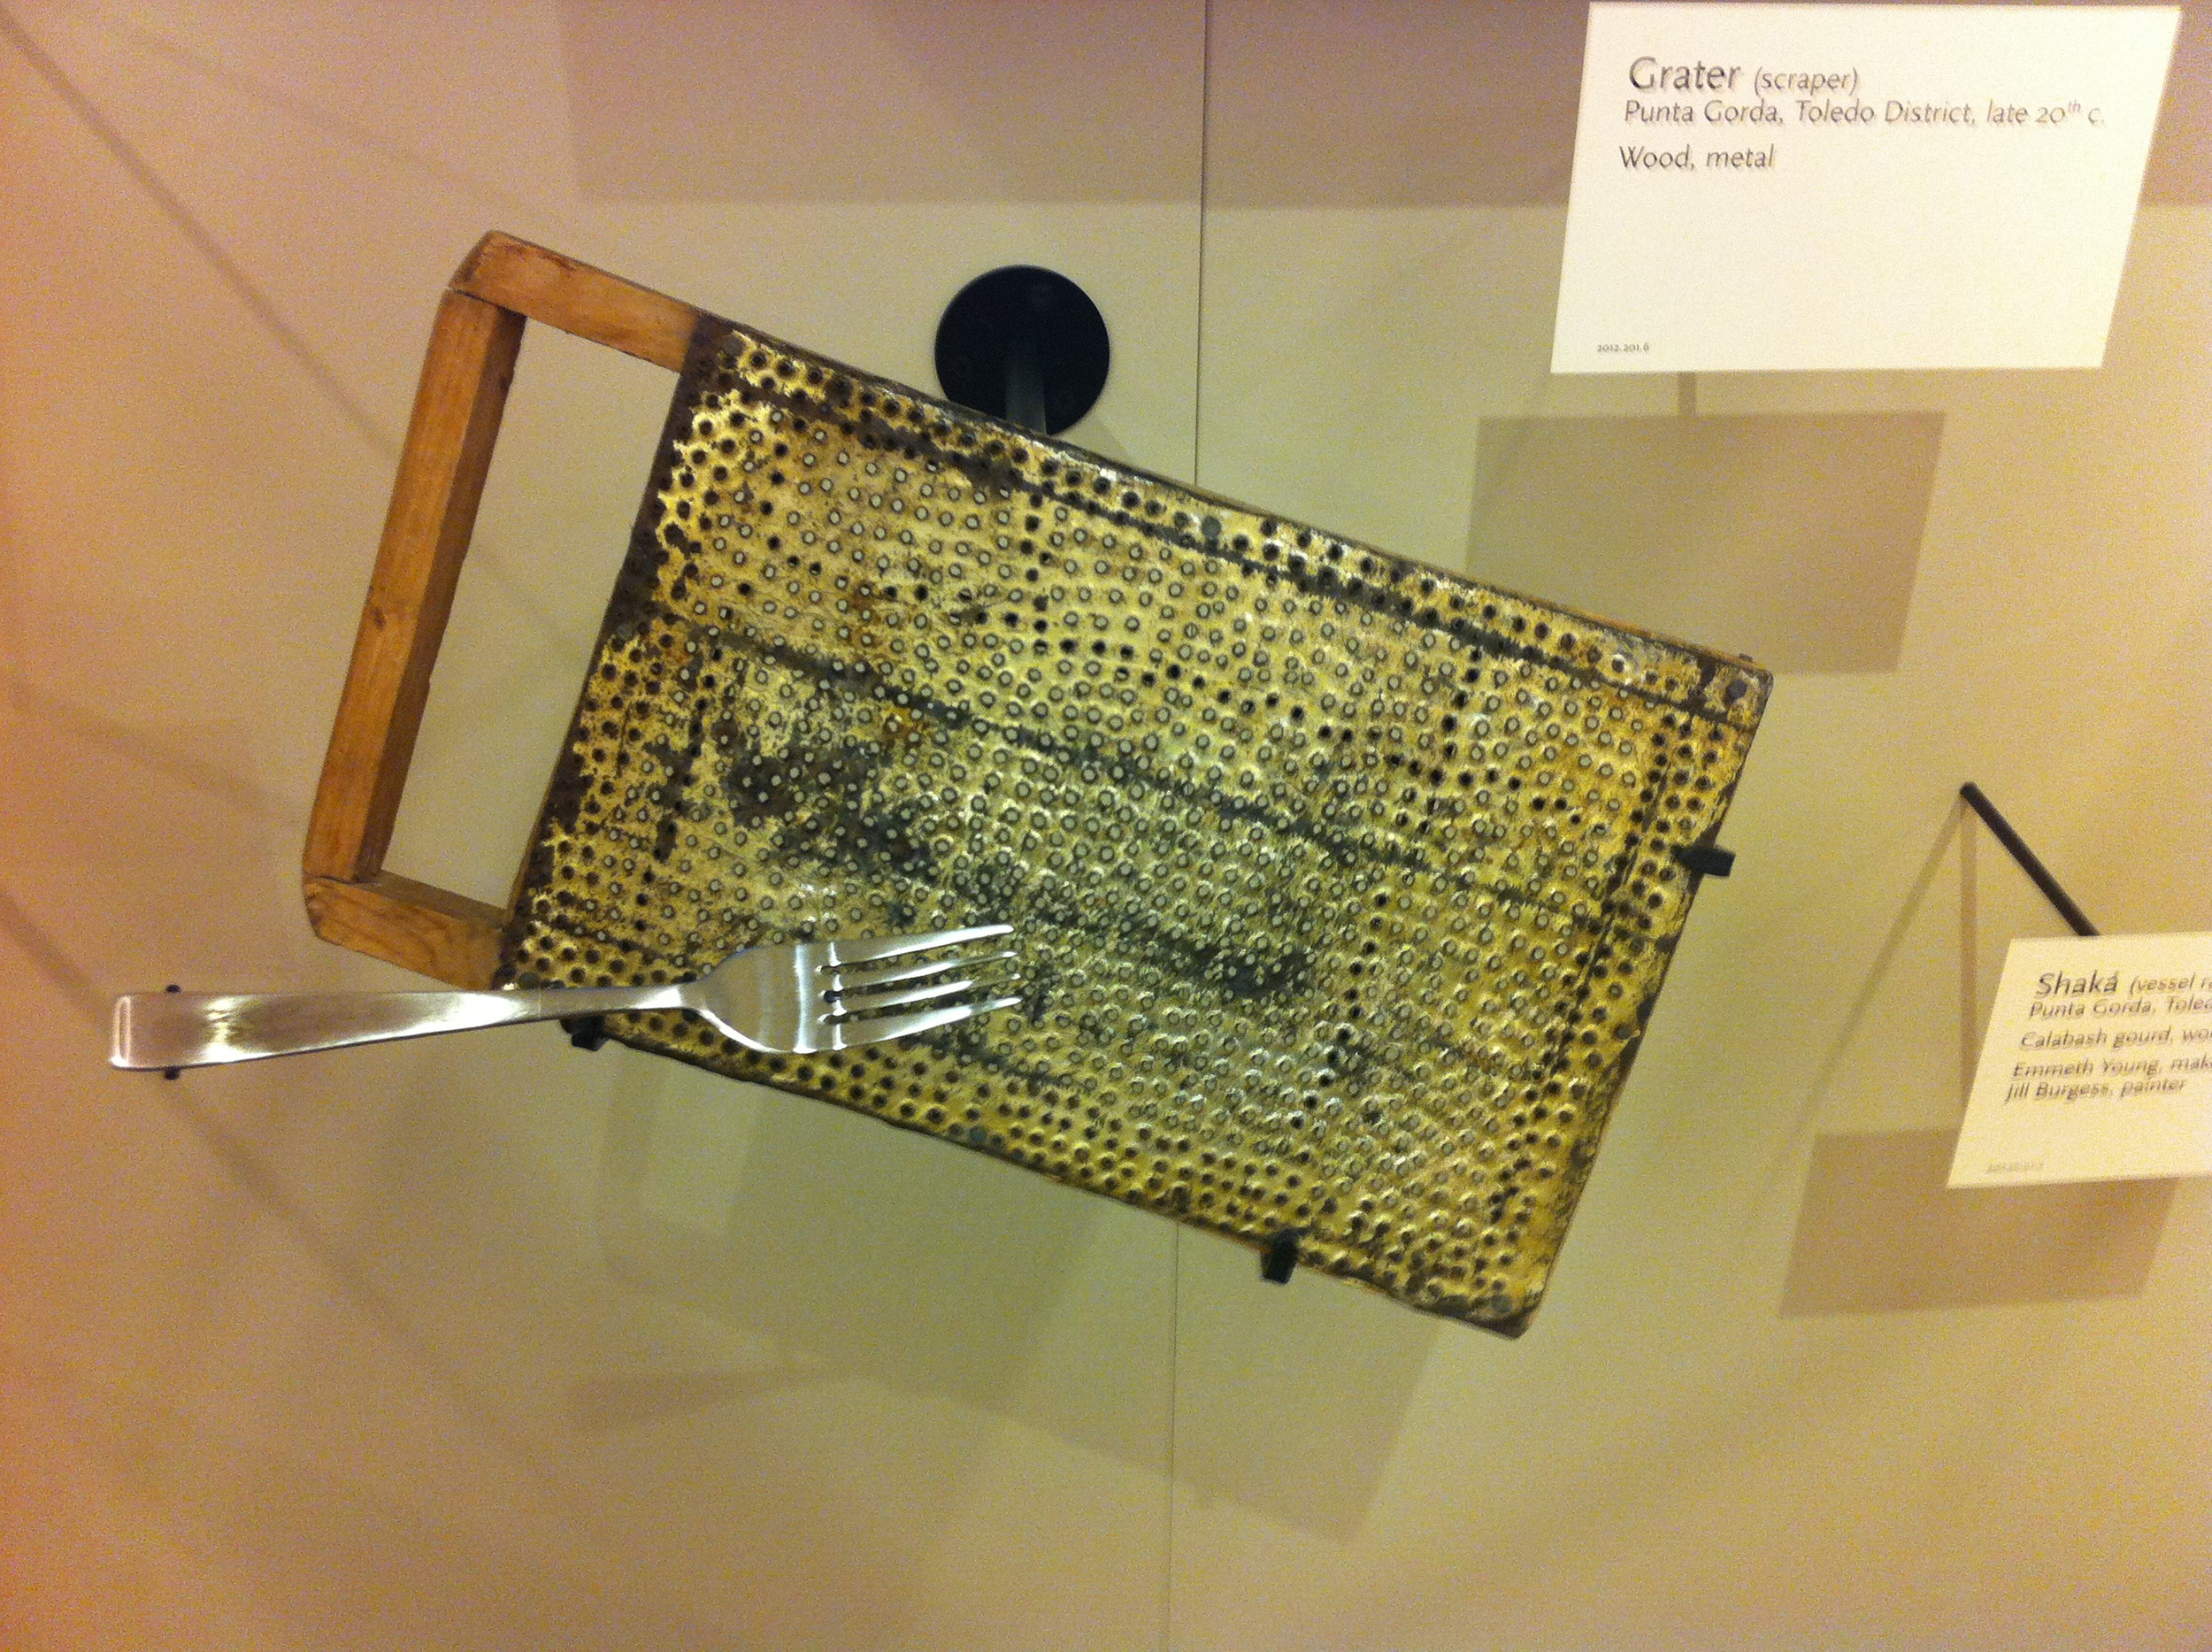 Some of the instruments are very simple like this Grater.